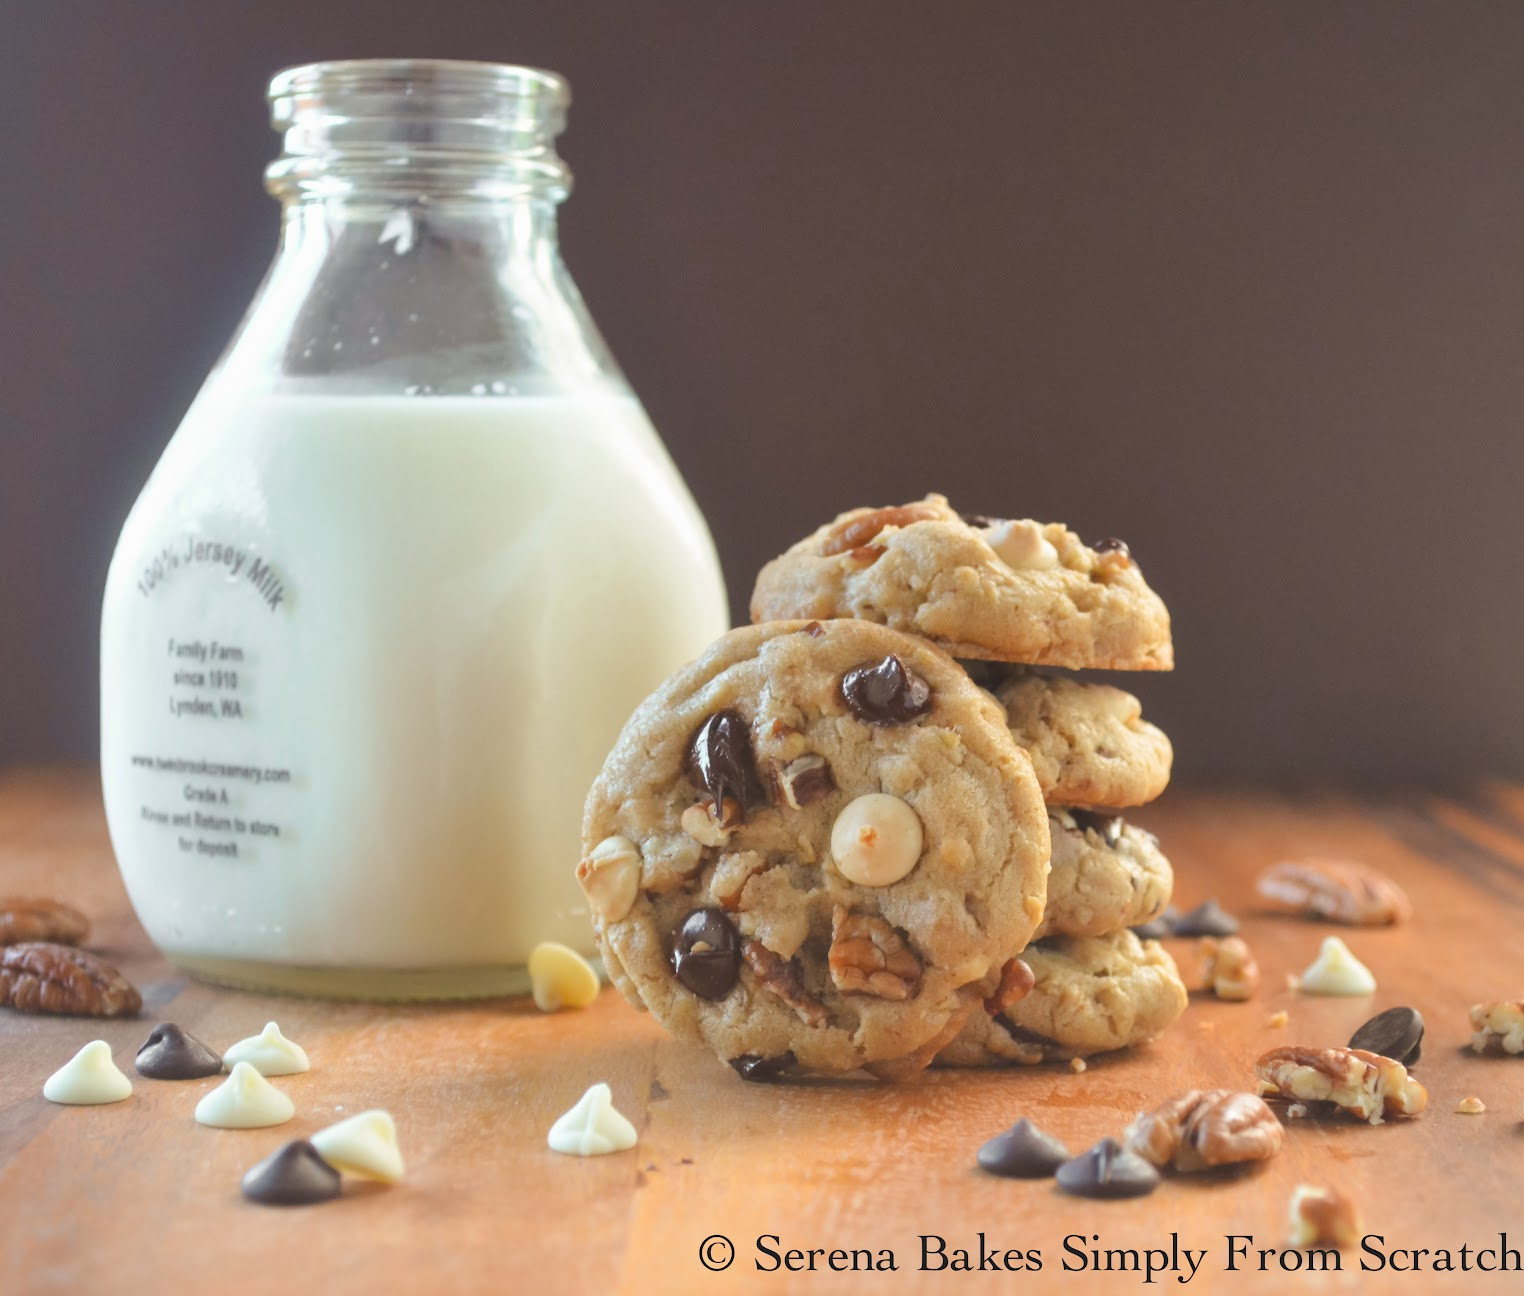 I Want To Marry You Chocolate Chip Cookies with Milk: Serena Bakes Simply From Scratch